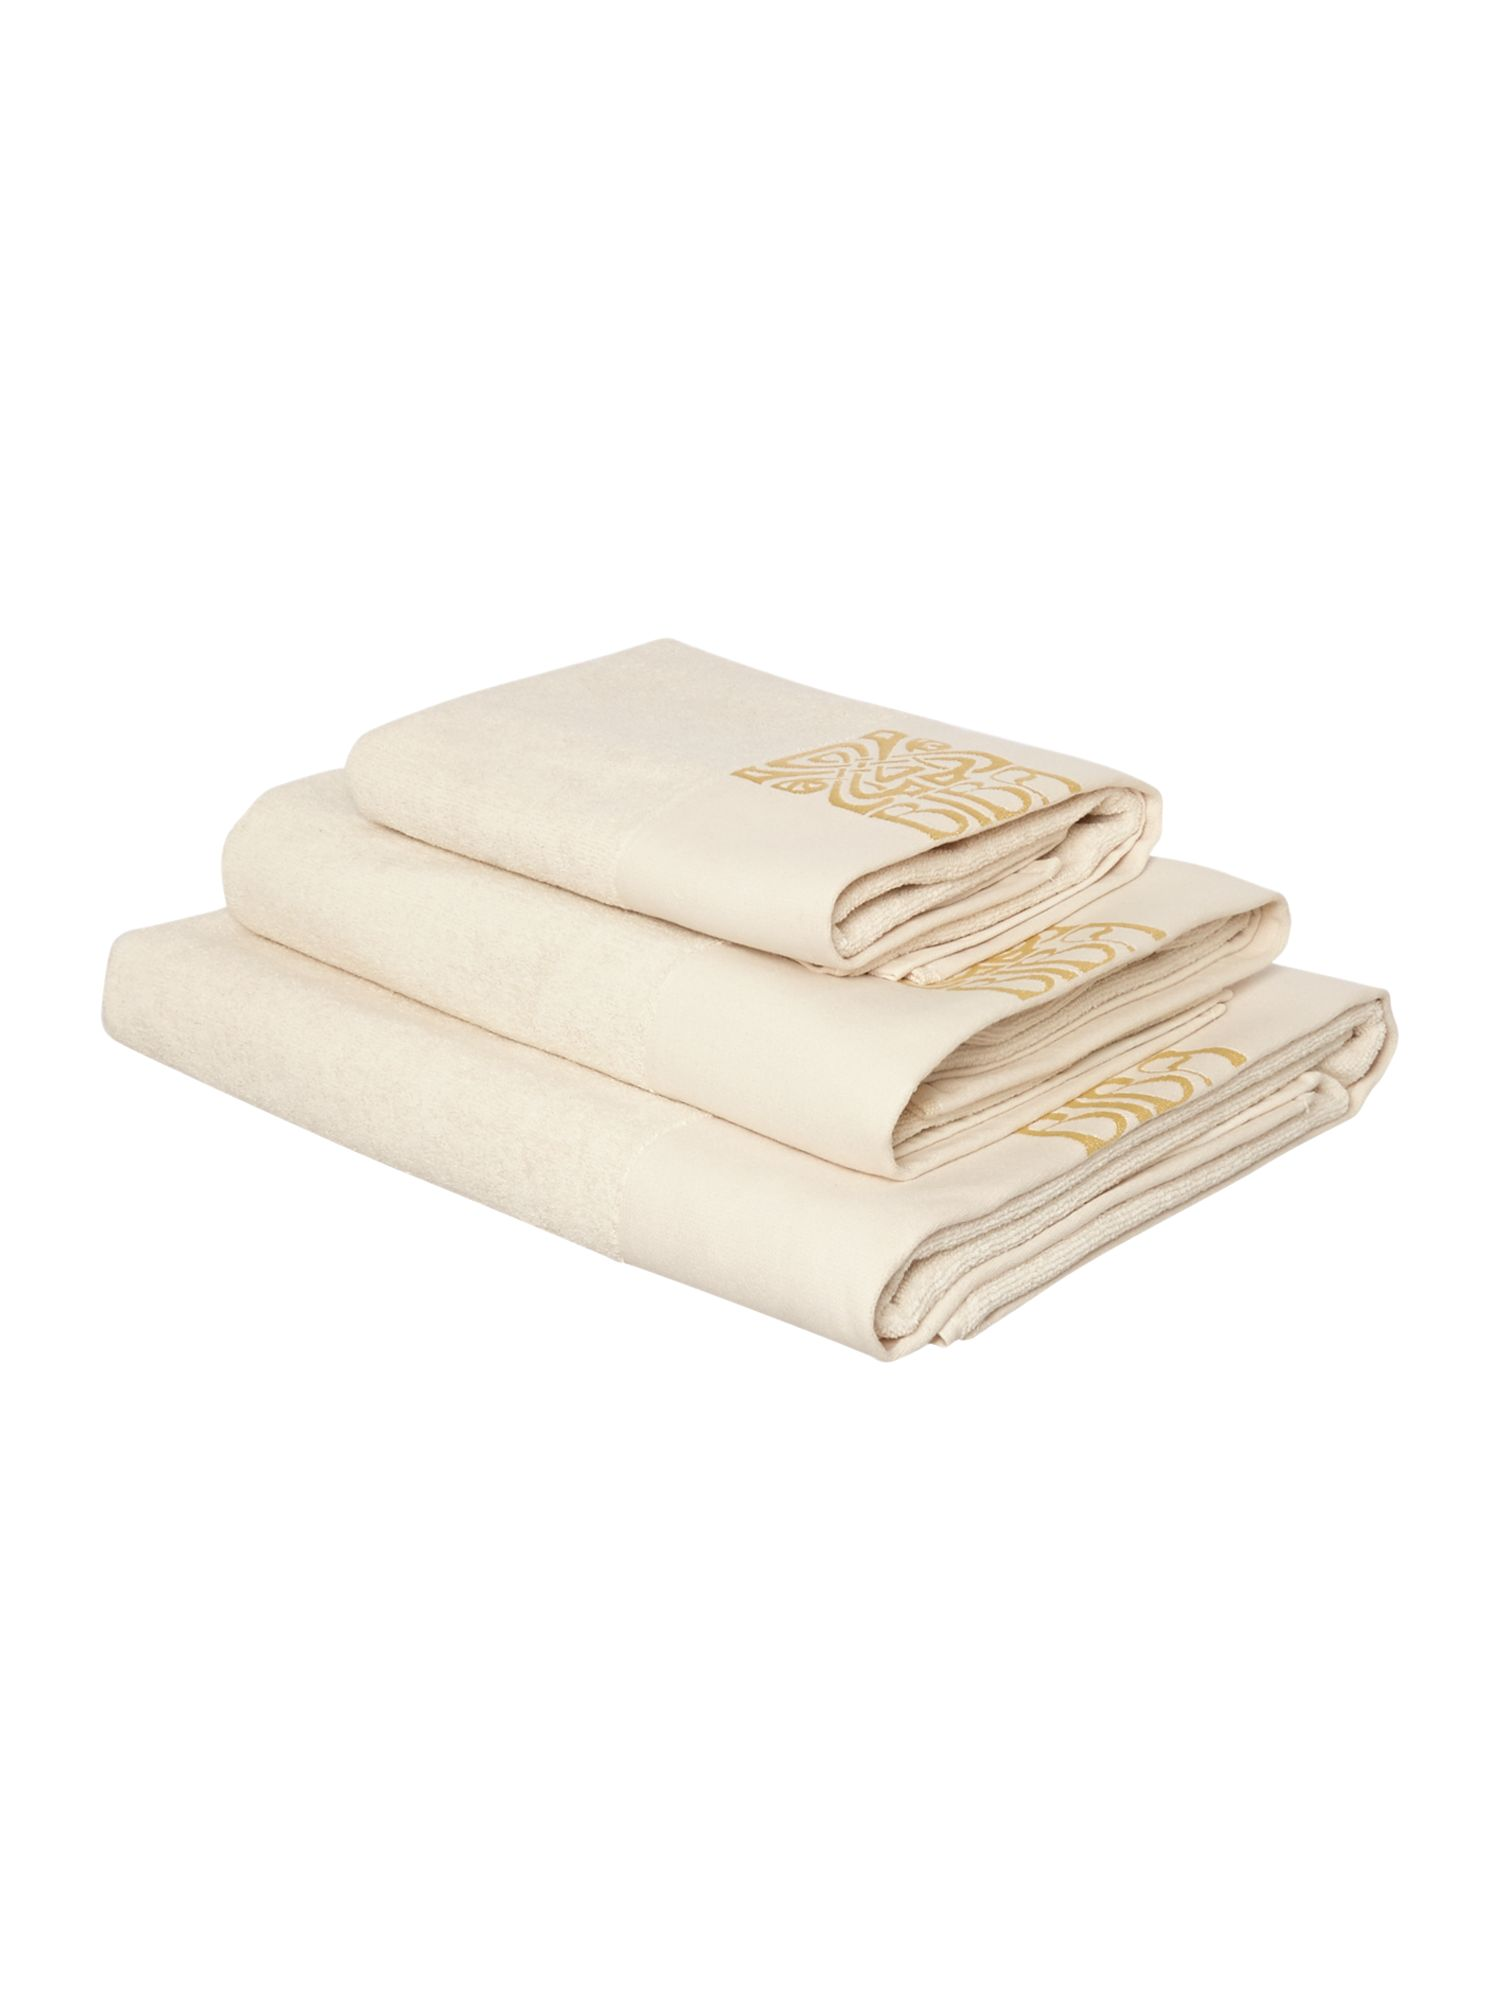 Biba Logo Amethyst Towel Collection